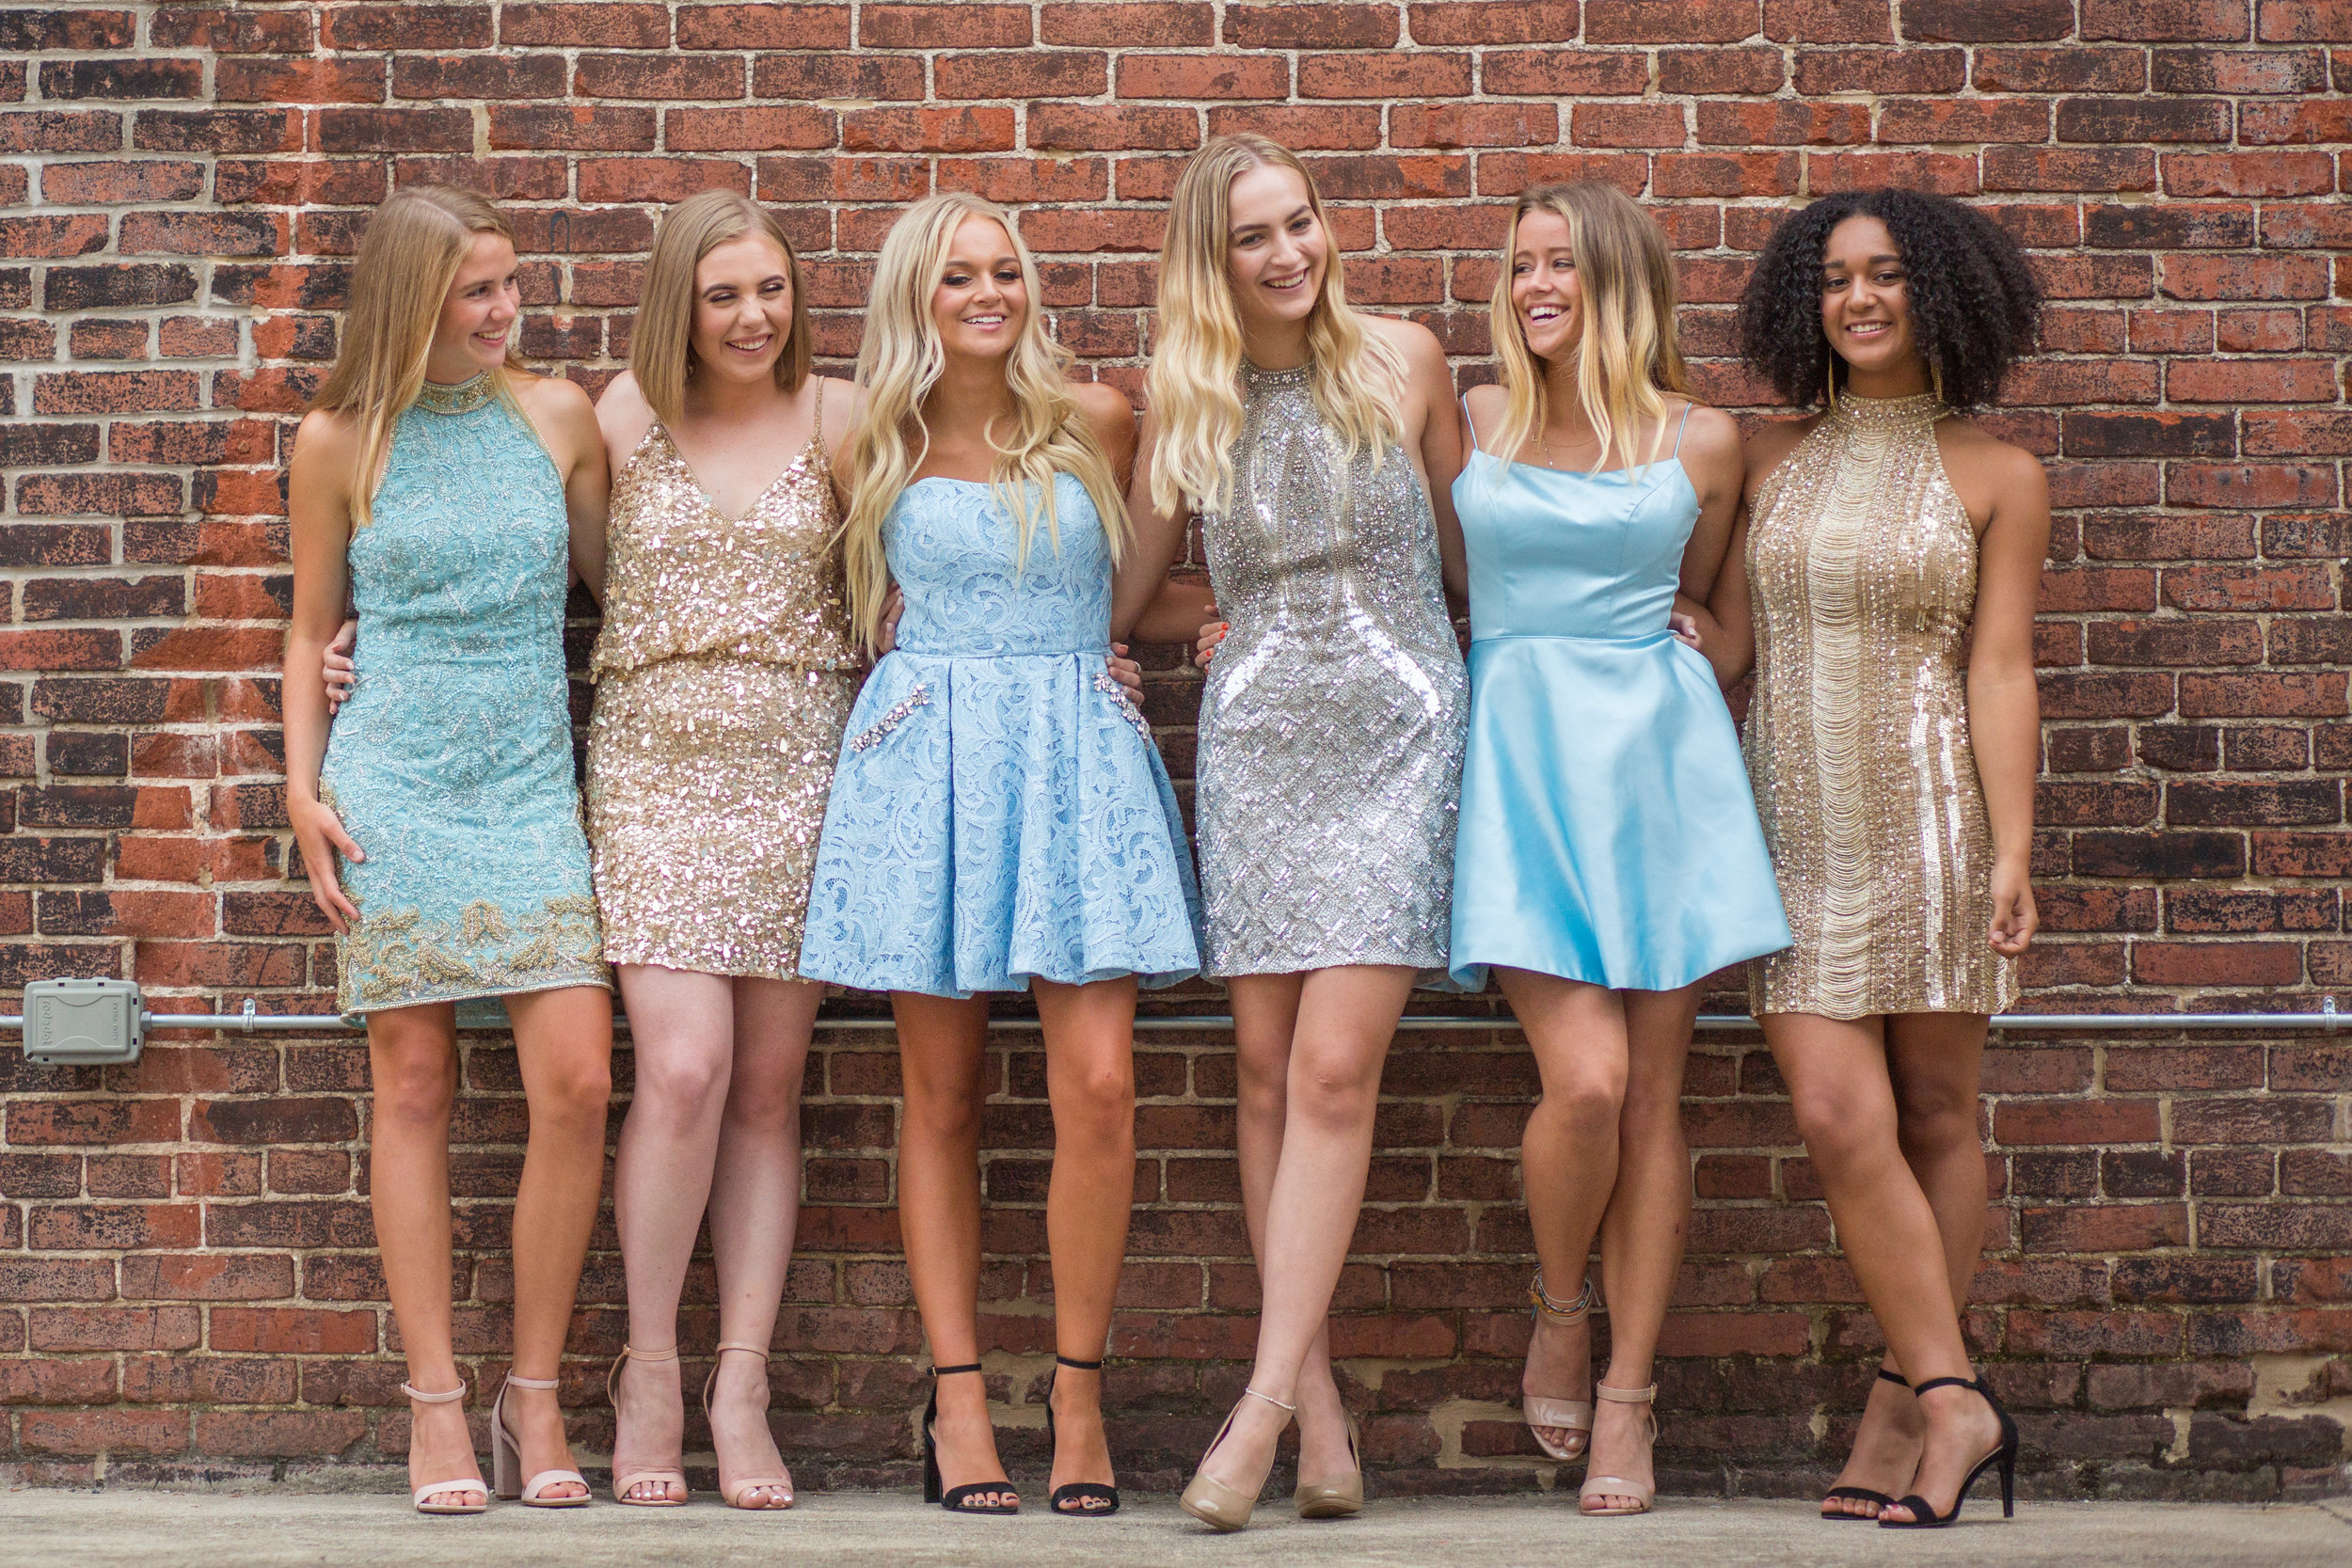 Pretty Team 20's Homecoming Photo Shoot featuring Sherri Hill dresses from J & B Bridal. Location at The Barrel House